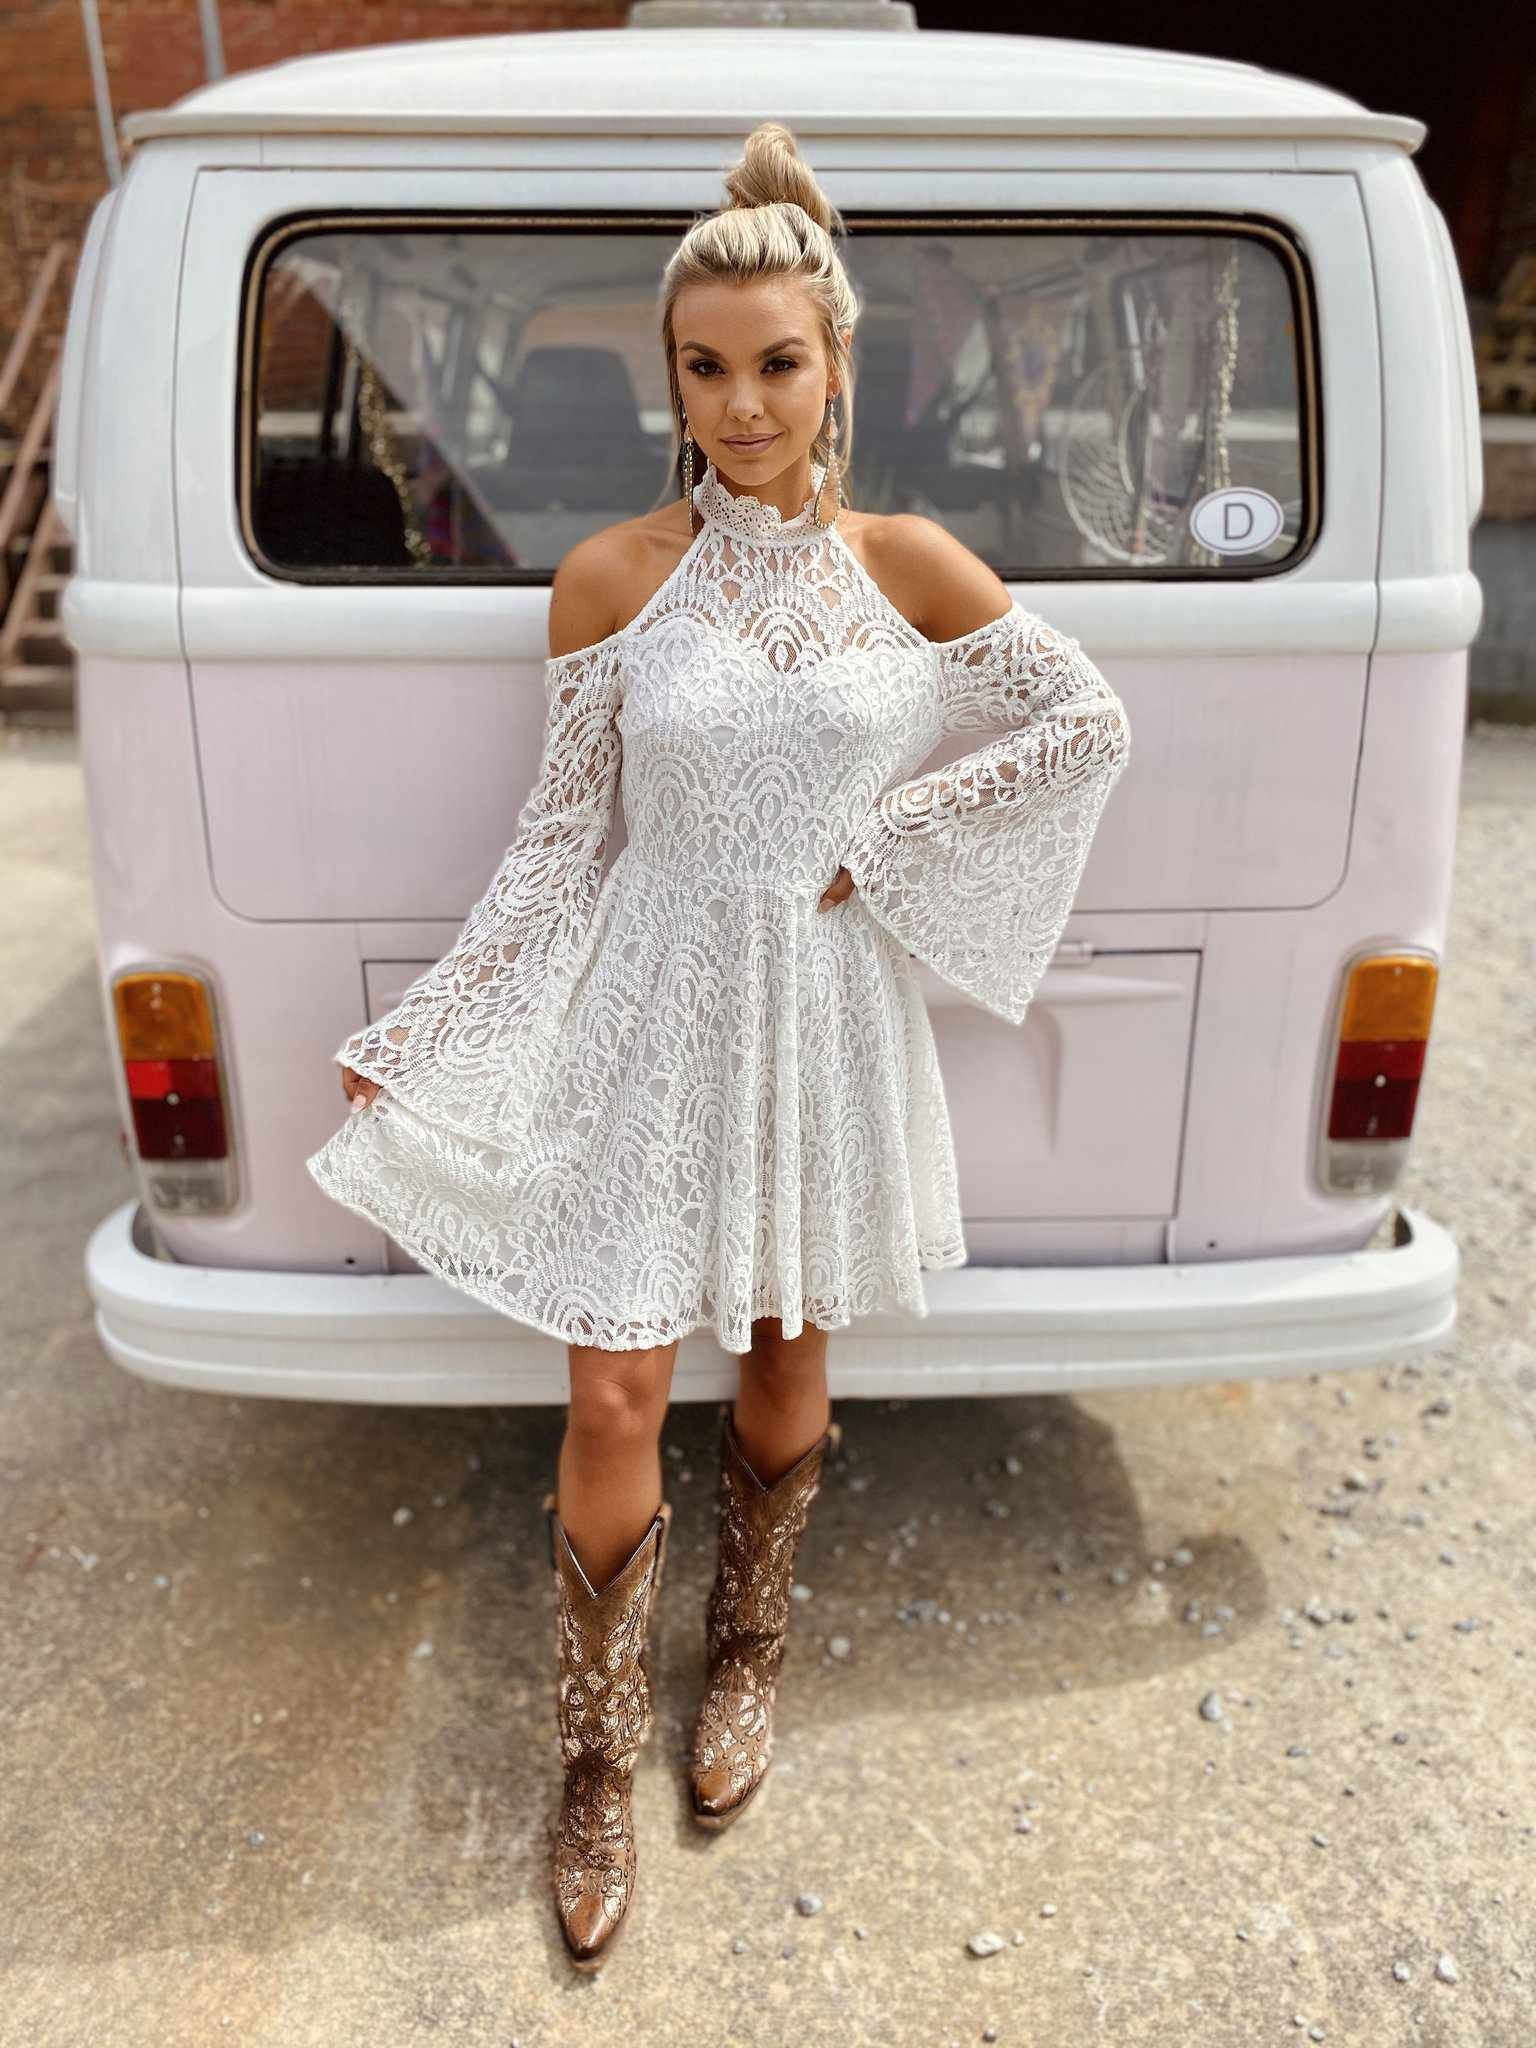 Off The Market Dress White Lace Summer Dresses Western Formal Dresses Cute Country Dresses [ 2048 x 1536 Pixel ]